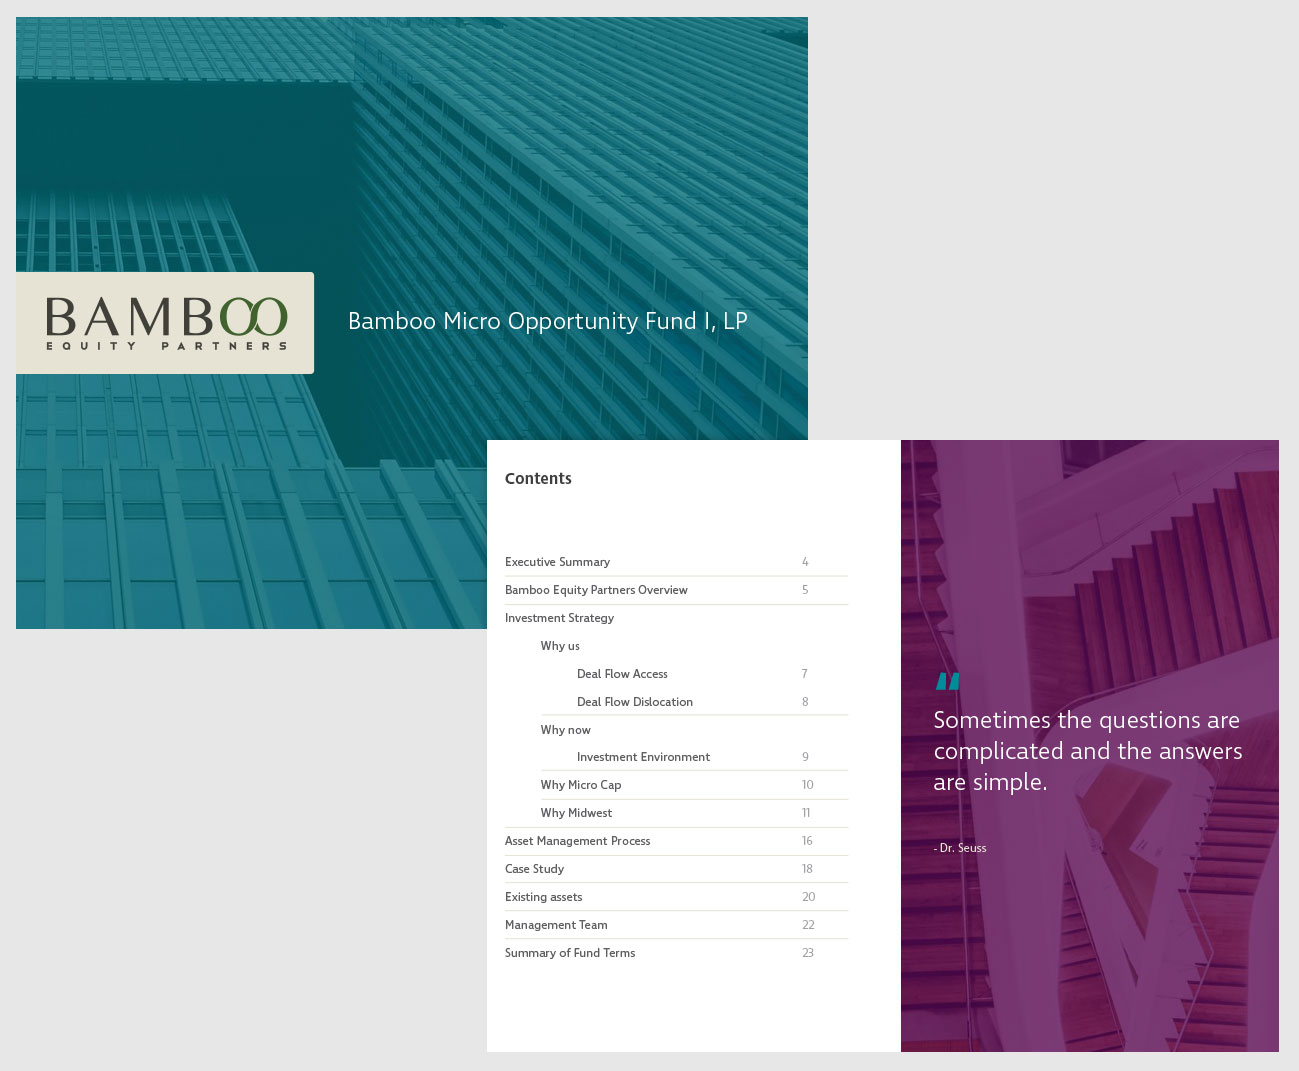 Presentation Graphic Design - Bamboo Equity Partners - #1